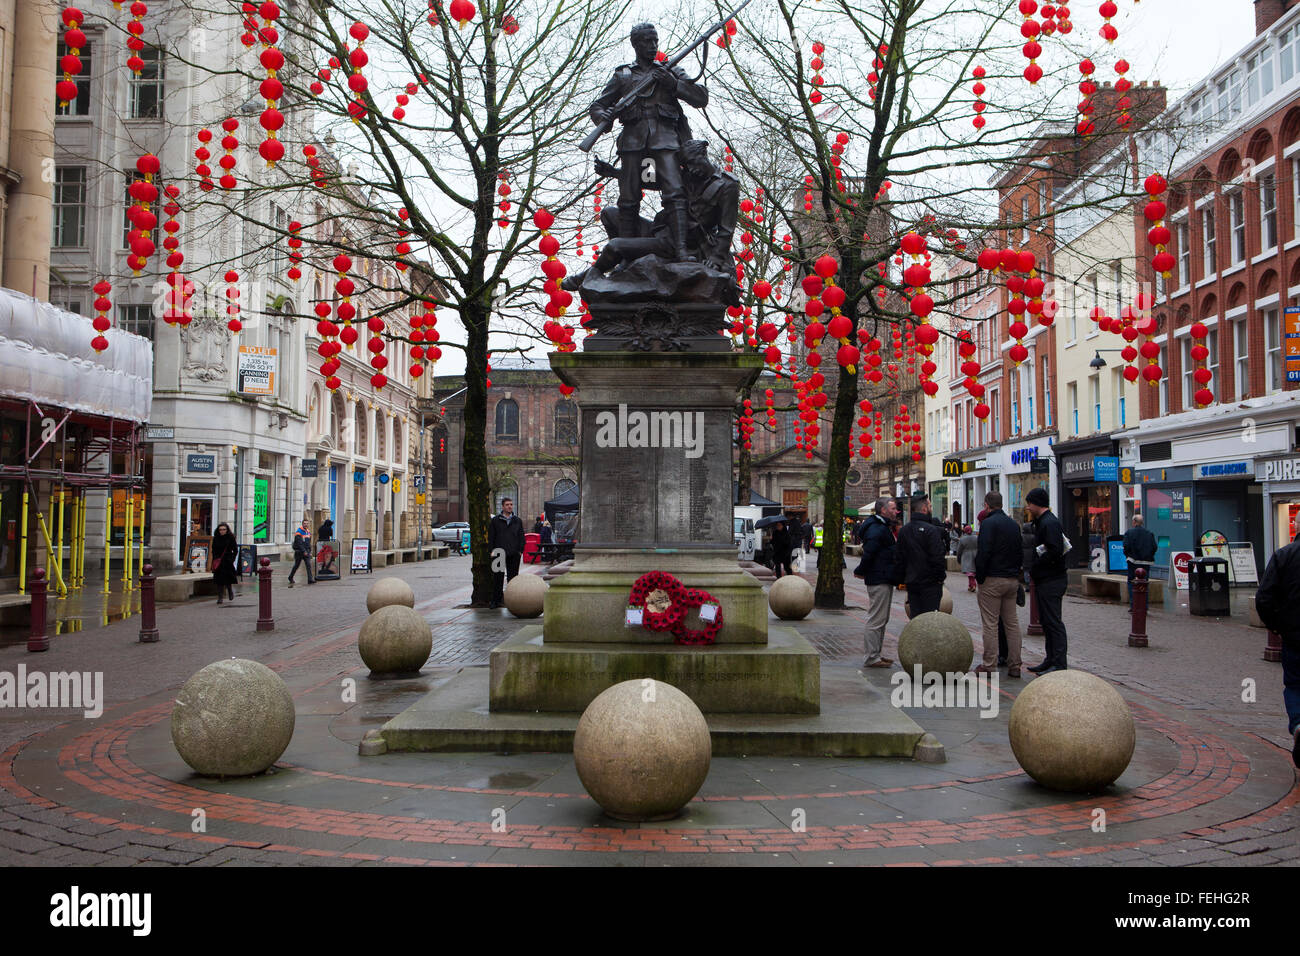 Chinese lanterns in St. Ann's Square, Manchester, UK Stock Photo